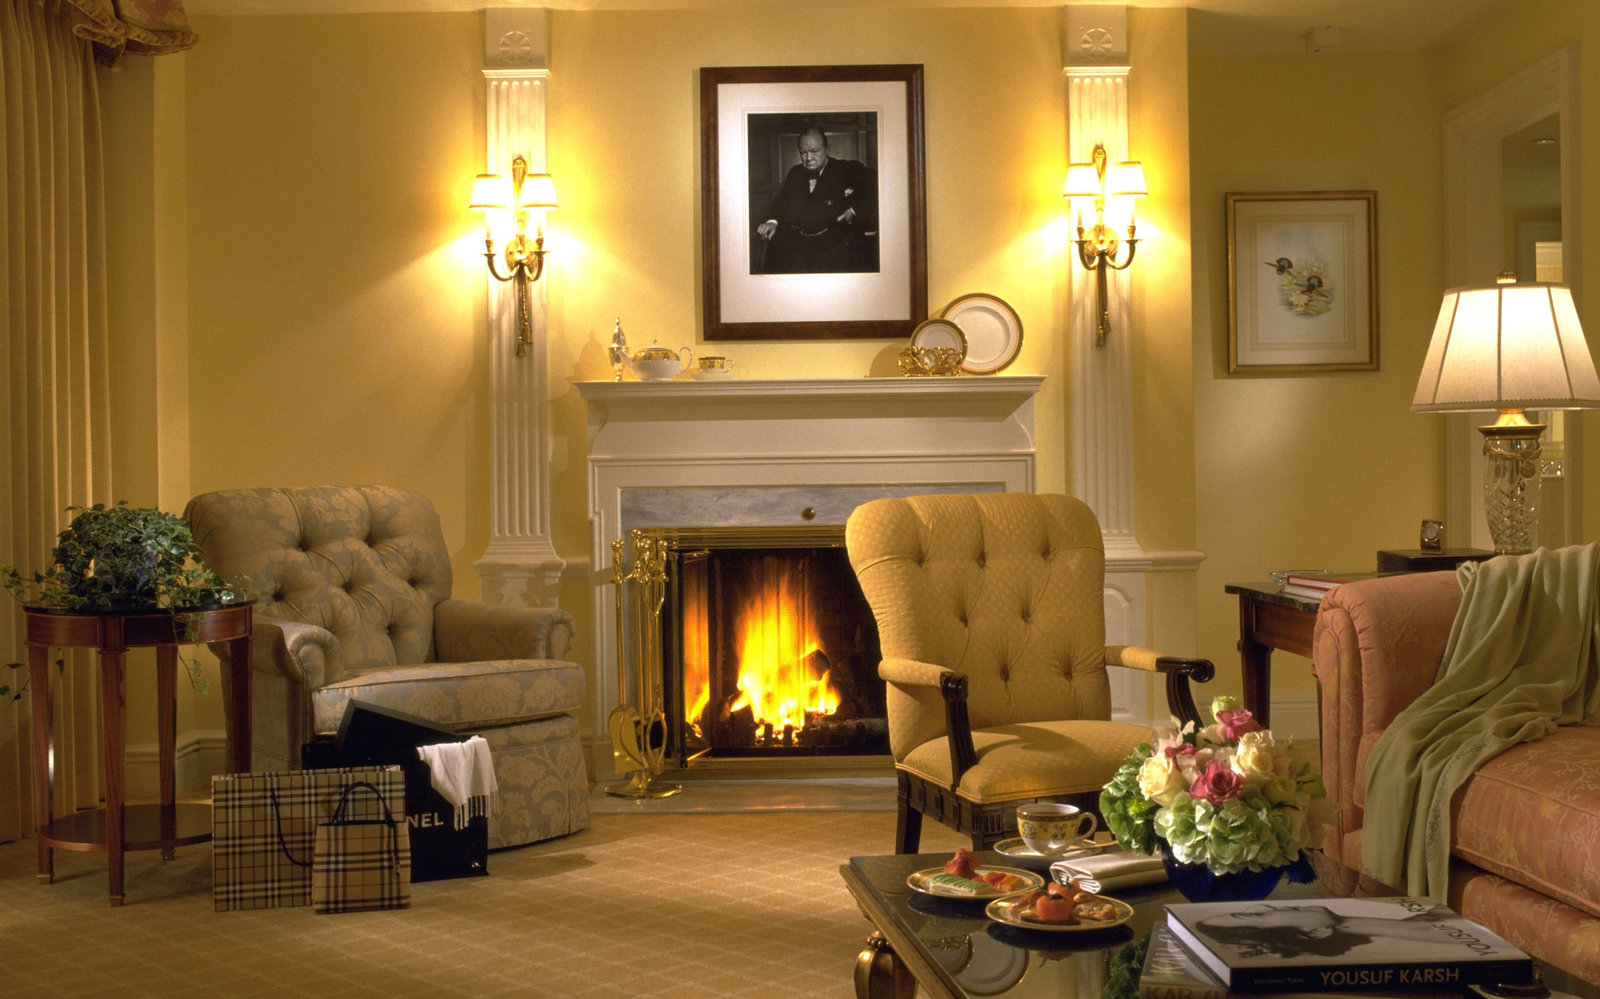 Luxury Hotel Fireplace Experiences  Travel  Leisure